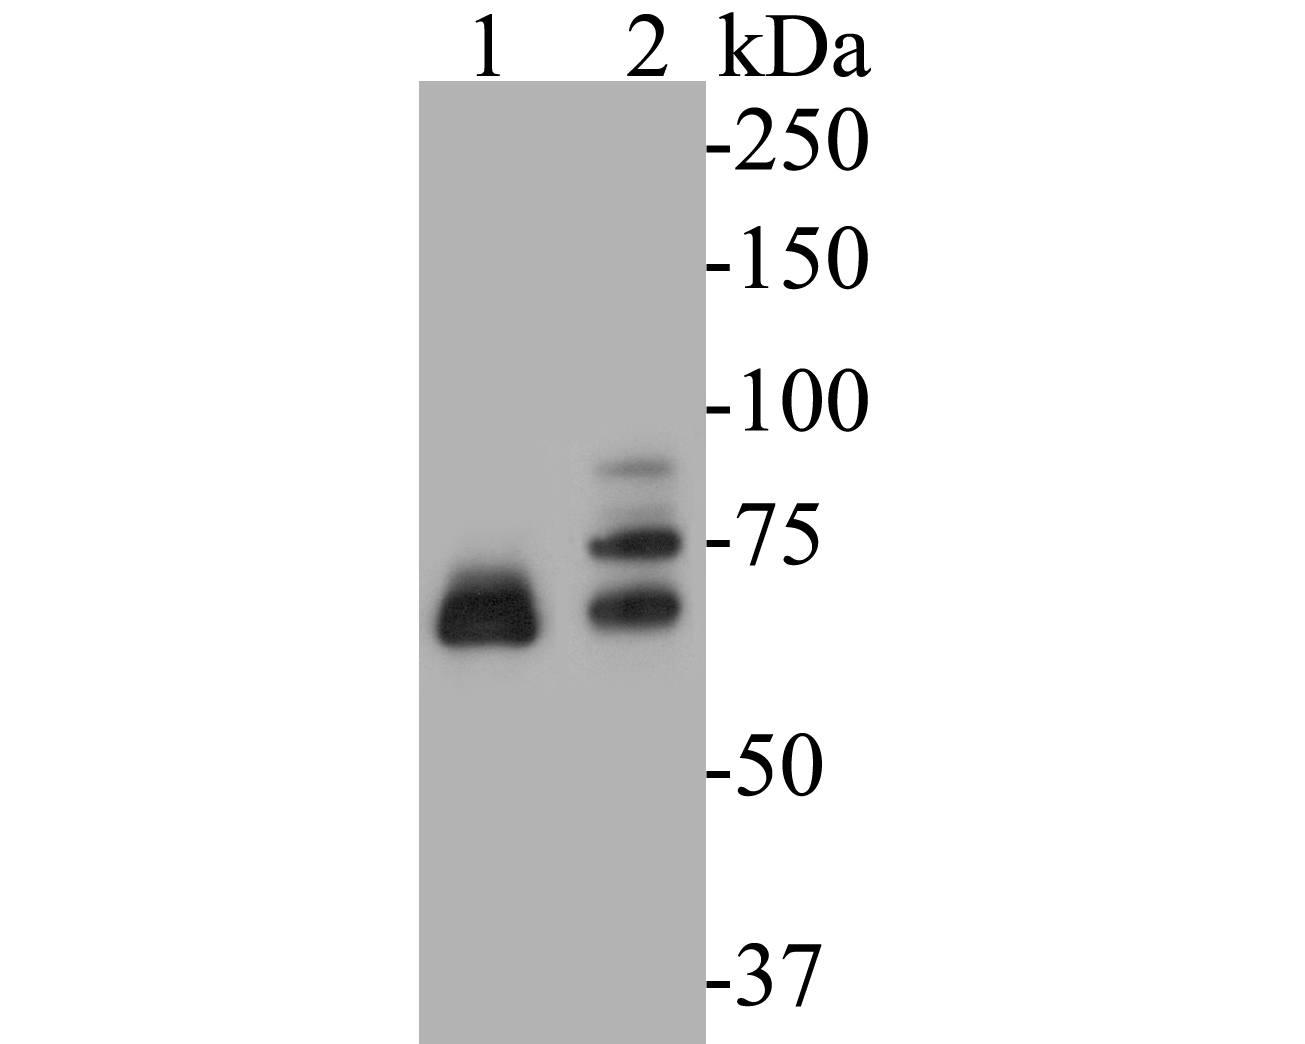 Western blot analysis of Dux on different lysates. Proteins were transferred to a PVDF membrane and blocked with 5% BSA in PBS for 1 hour at room temperature. The primary antibody (ER1901-52, 1/500) was used in 5% BSA at room temperature for 2 hours. Goat Anti-Rabbit IgG - HRP Secondary Antibody (HA1001) at 1:5,000 dilution was used for 1 hour at room temperature.<br /> Positive control: <br /> Lane 1: Hela cell lysate<br /> Lane 2: Jurkat cell lysate